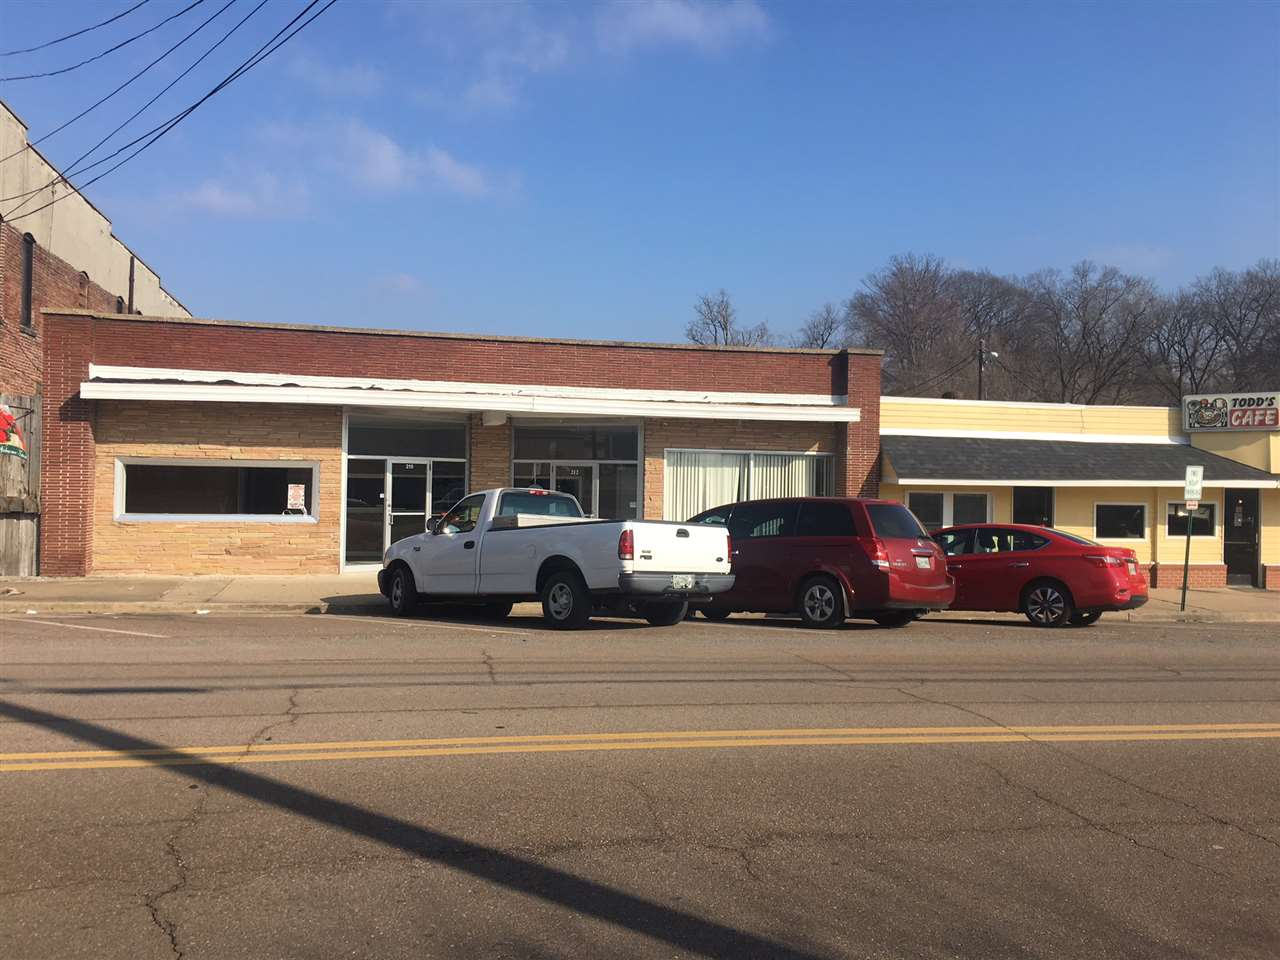 210 E Court St,Dyersburg,Tennessee 38024,Commercial/industrial,210 E Court St,181803